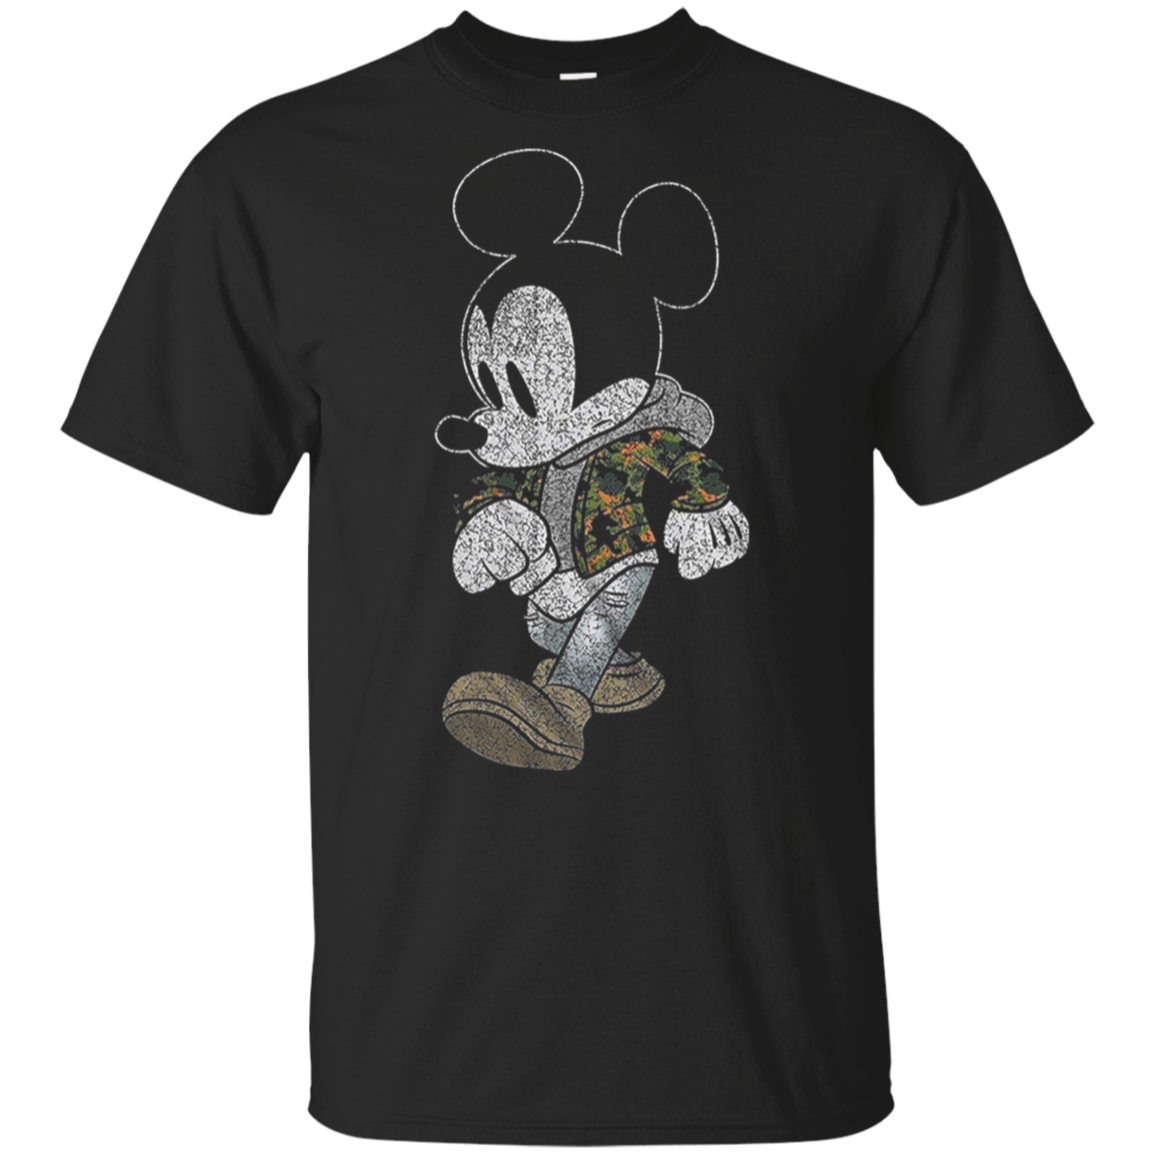 Grunge Mickey Youth/Adult